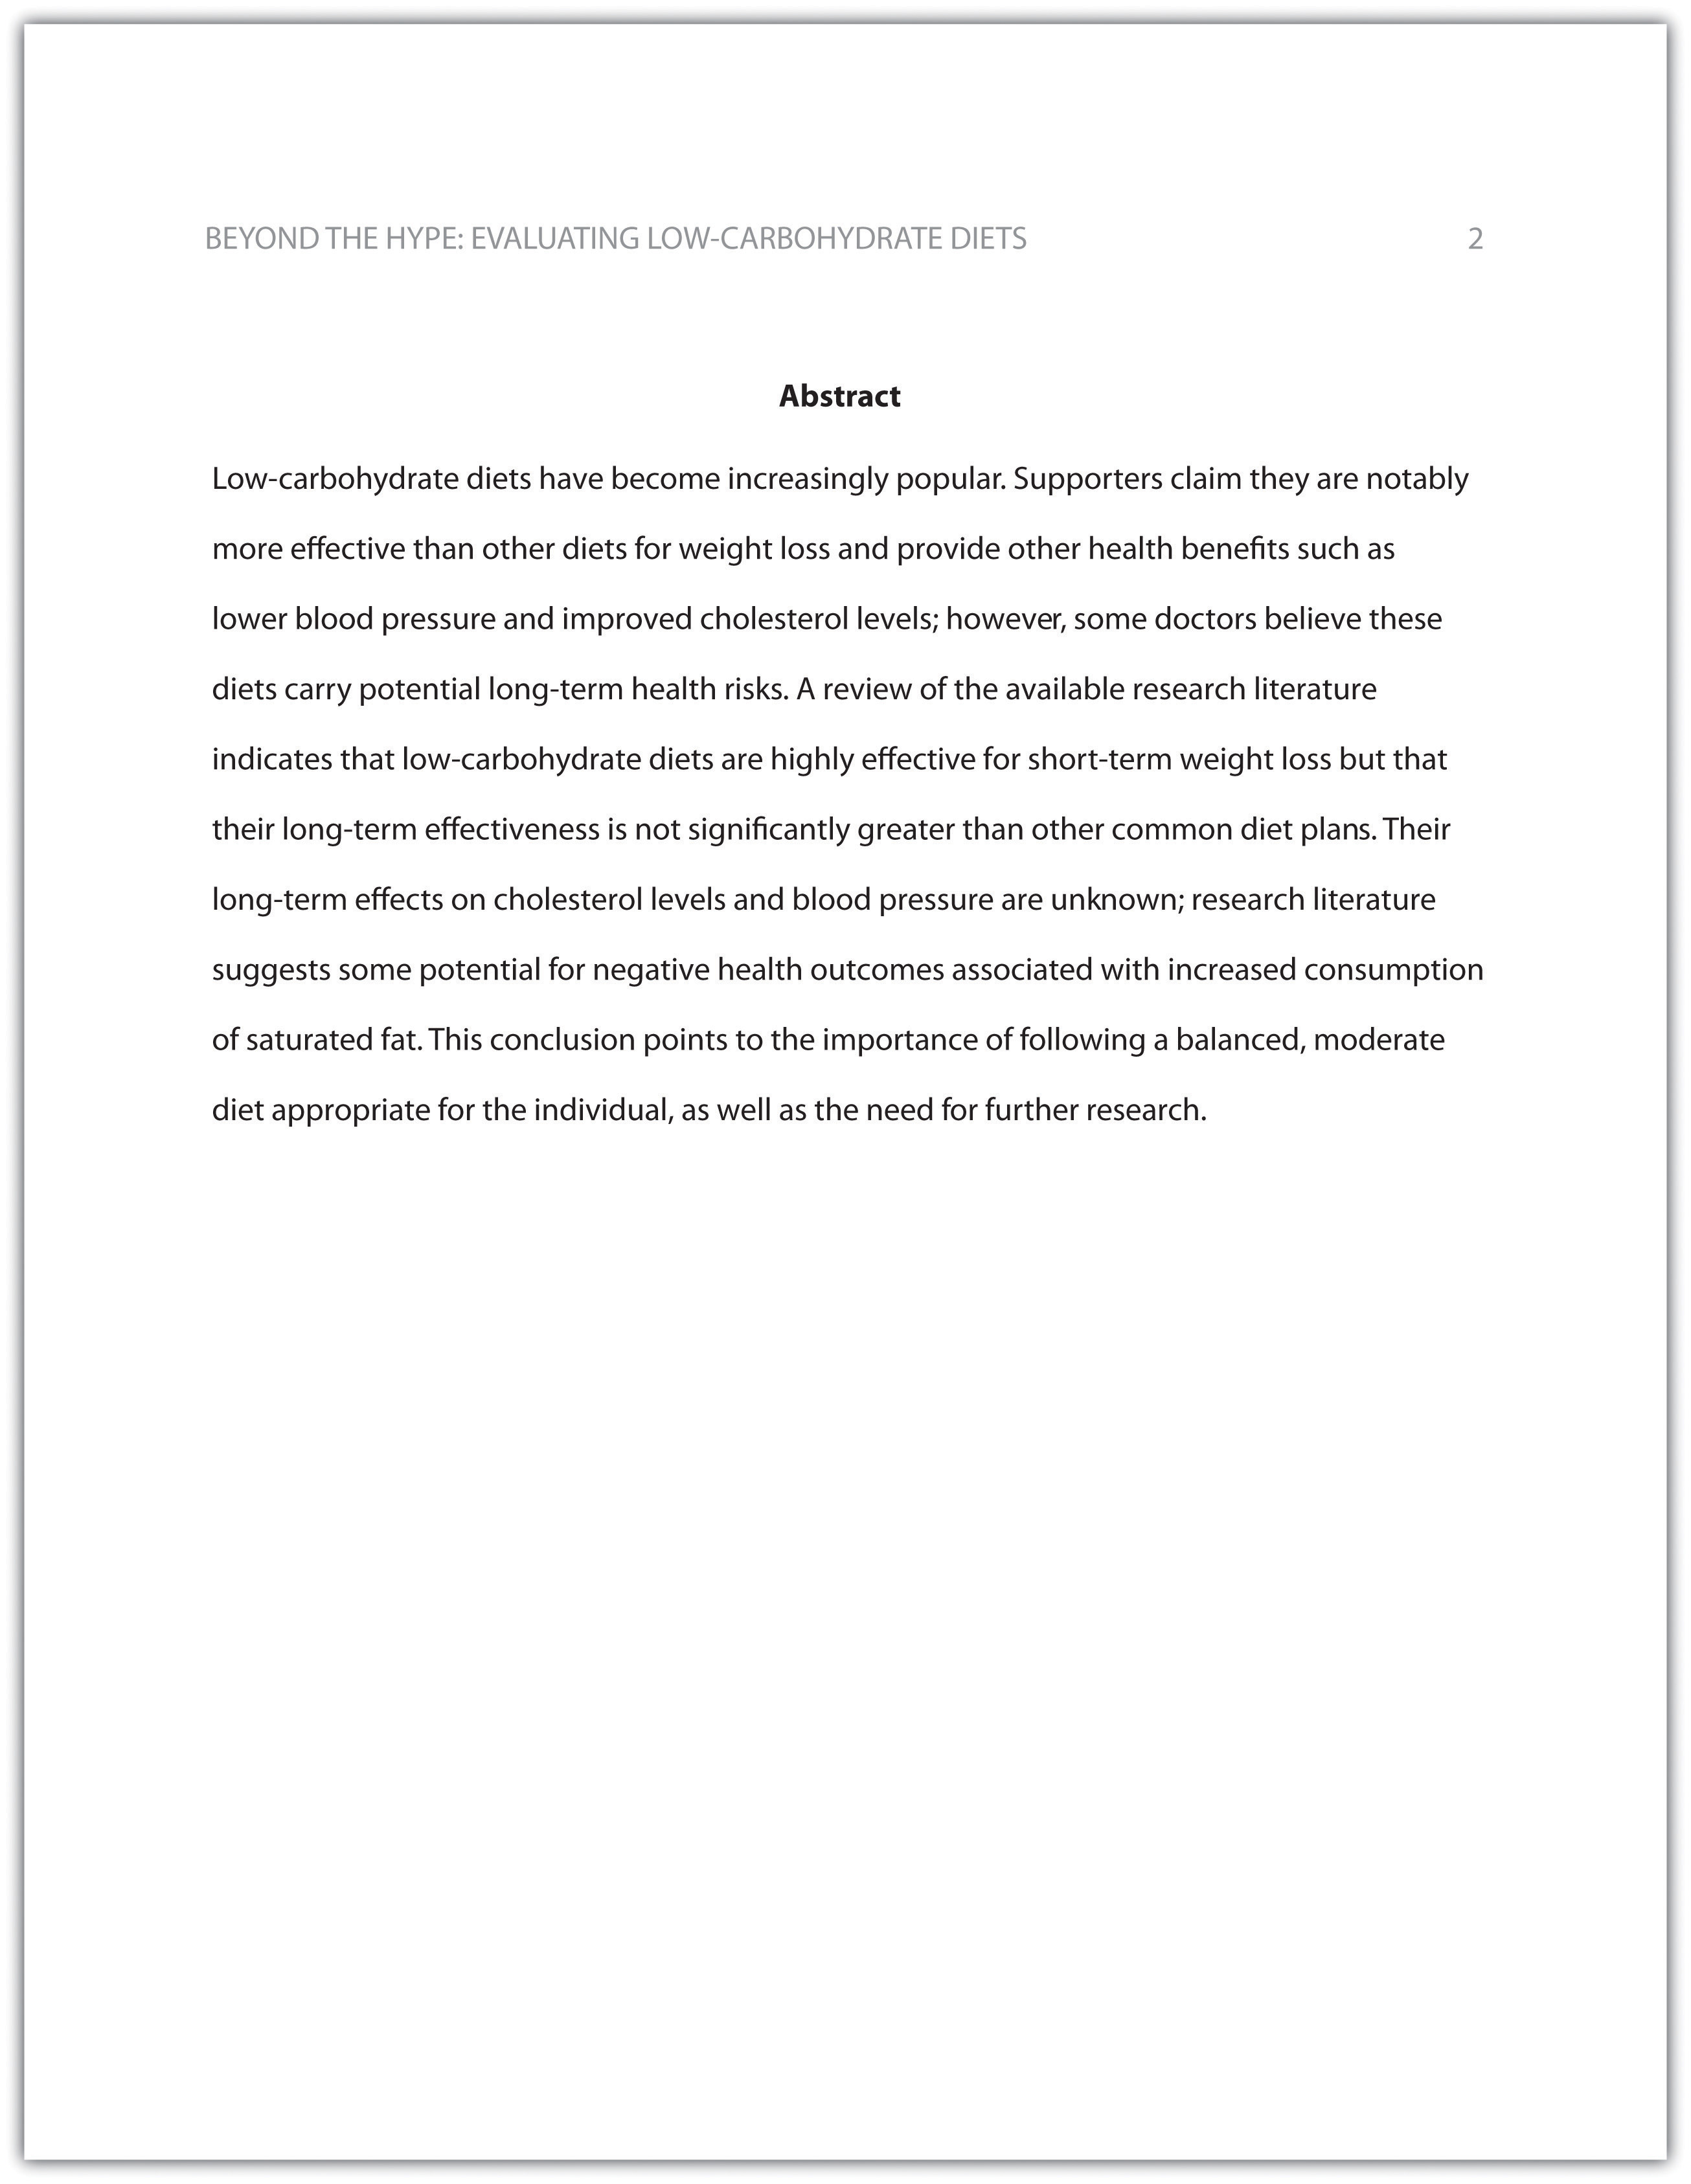 009 Research Paper Mla Formatting Wondrous Instructions Full